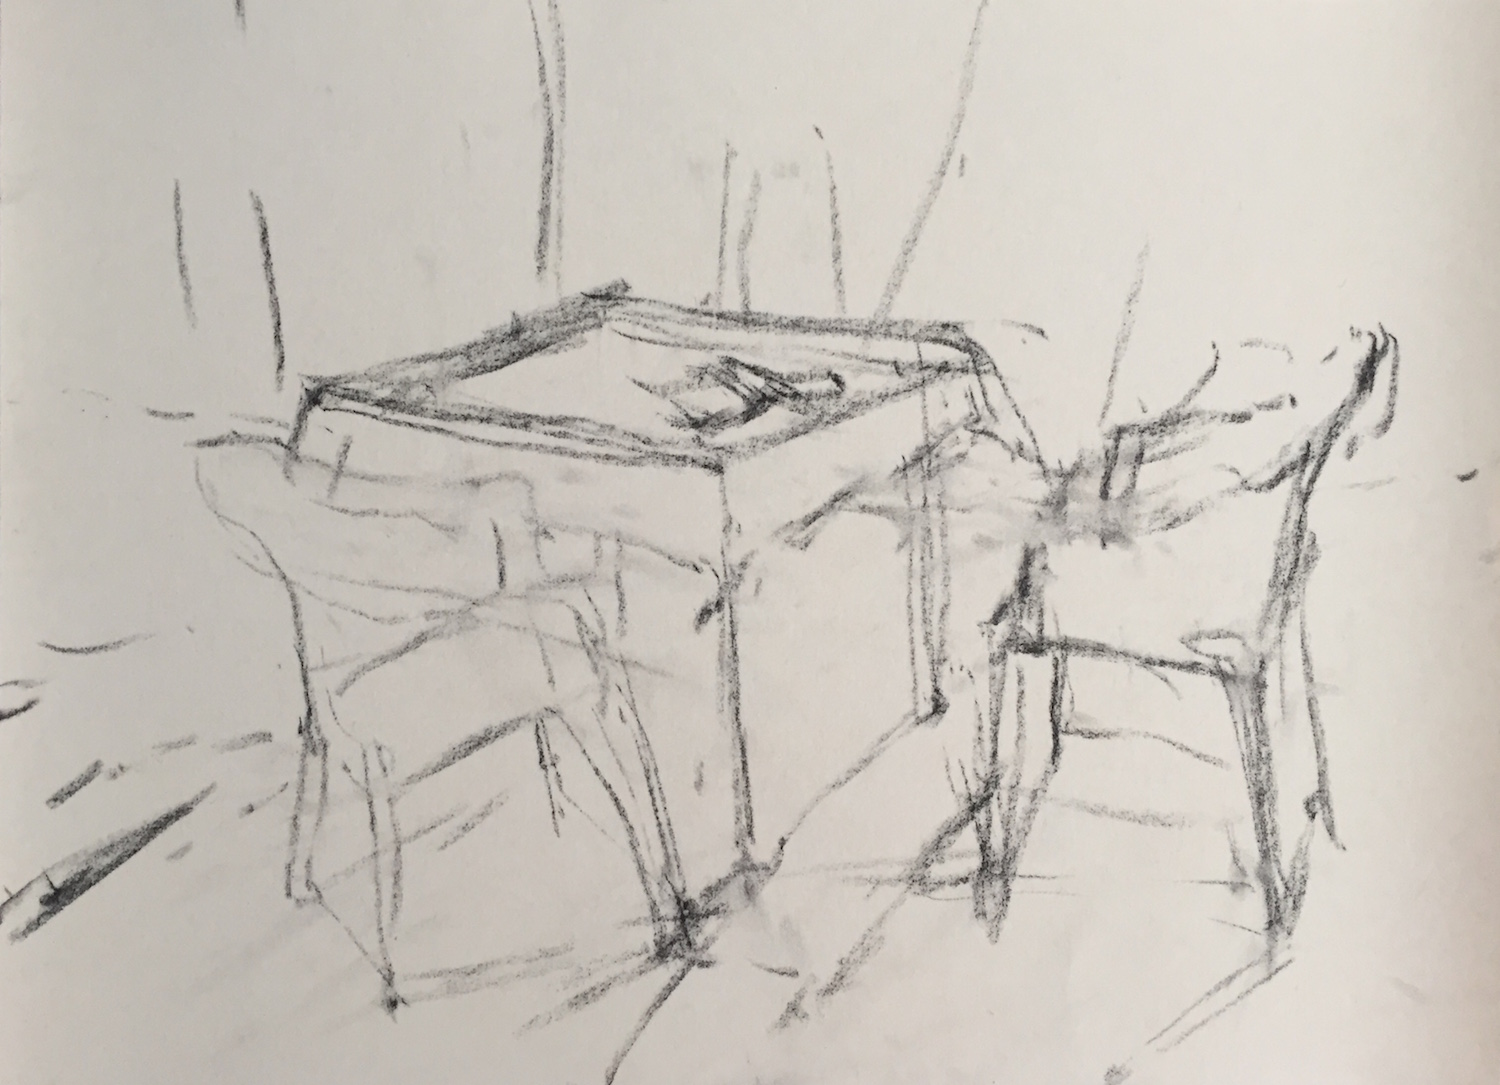 Chaos of Light And Shadow: 2. A quick placement of the main items of table and chairs, trying to get at least some correctness of perspective. Vine charcoal on UART 400.